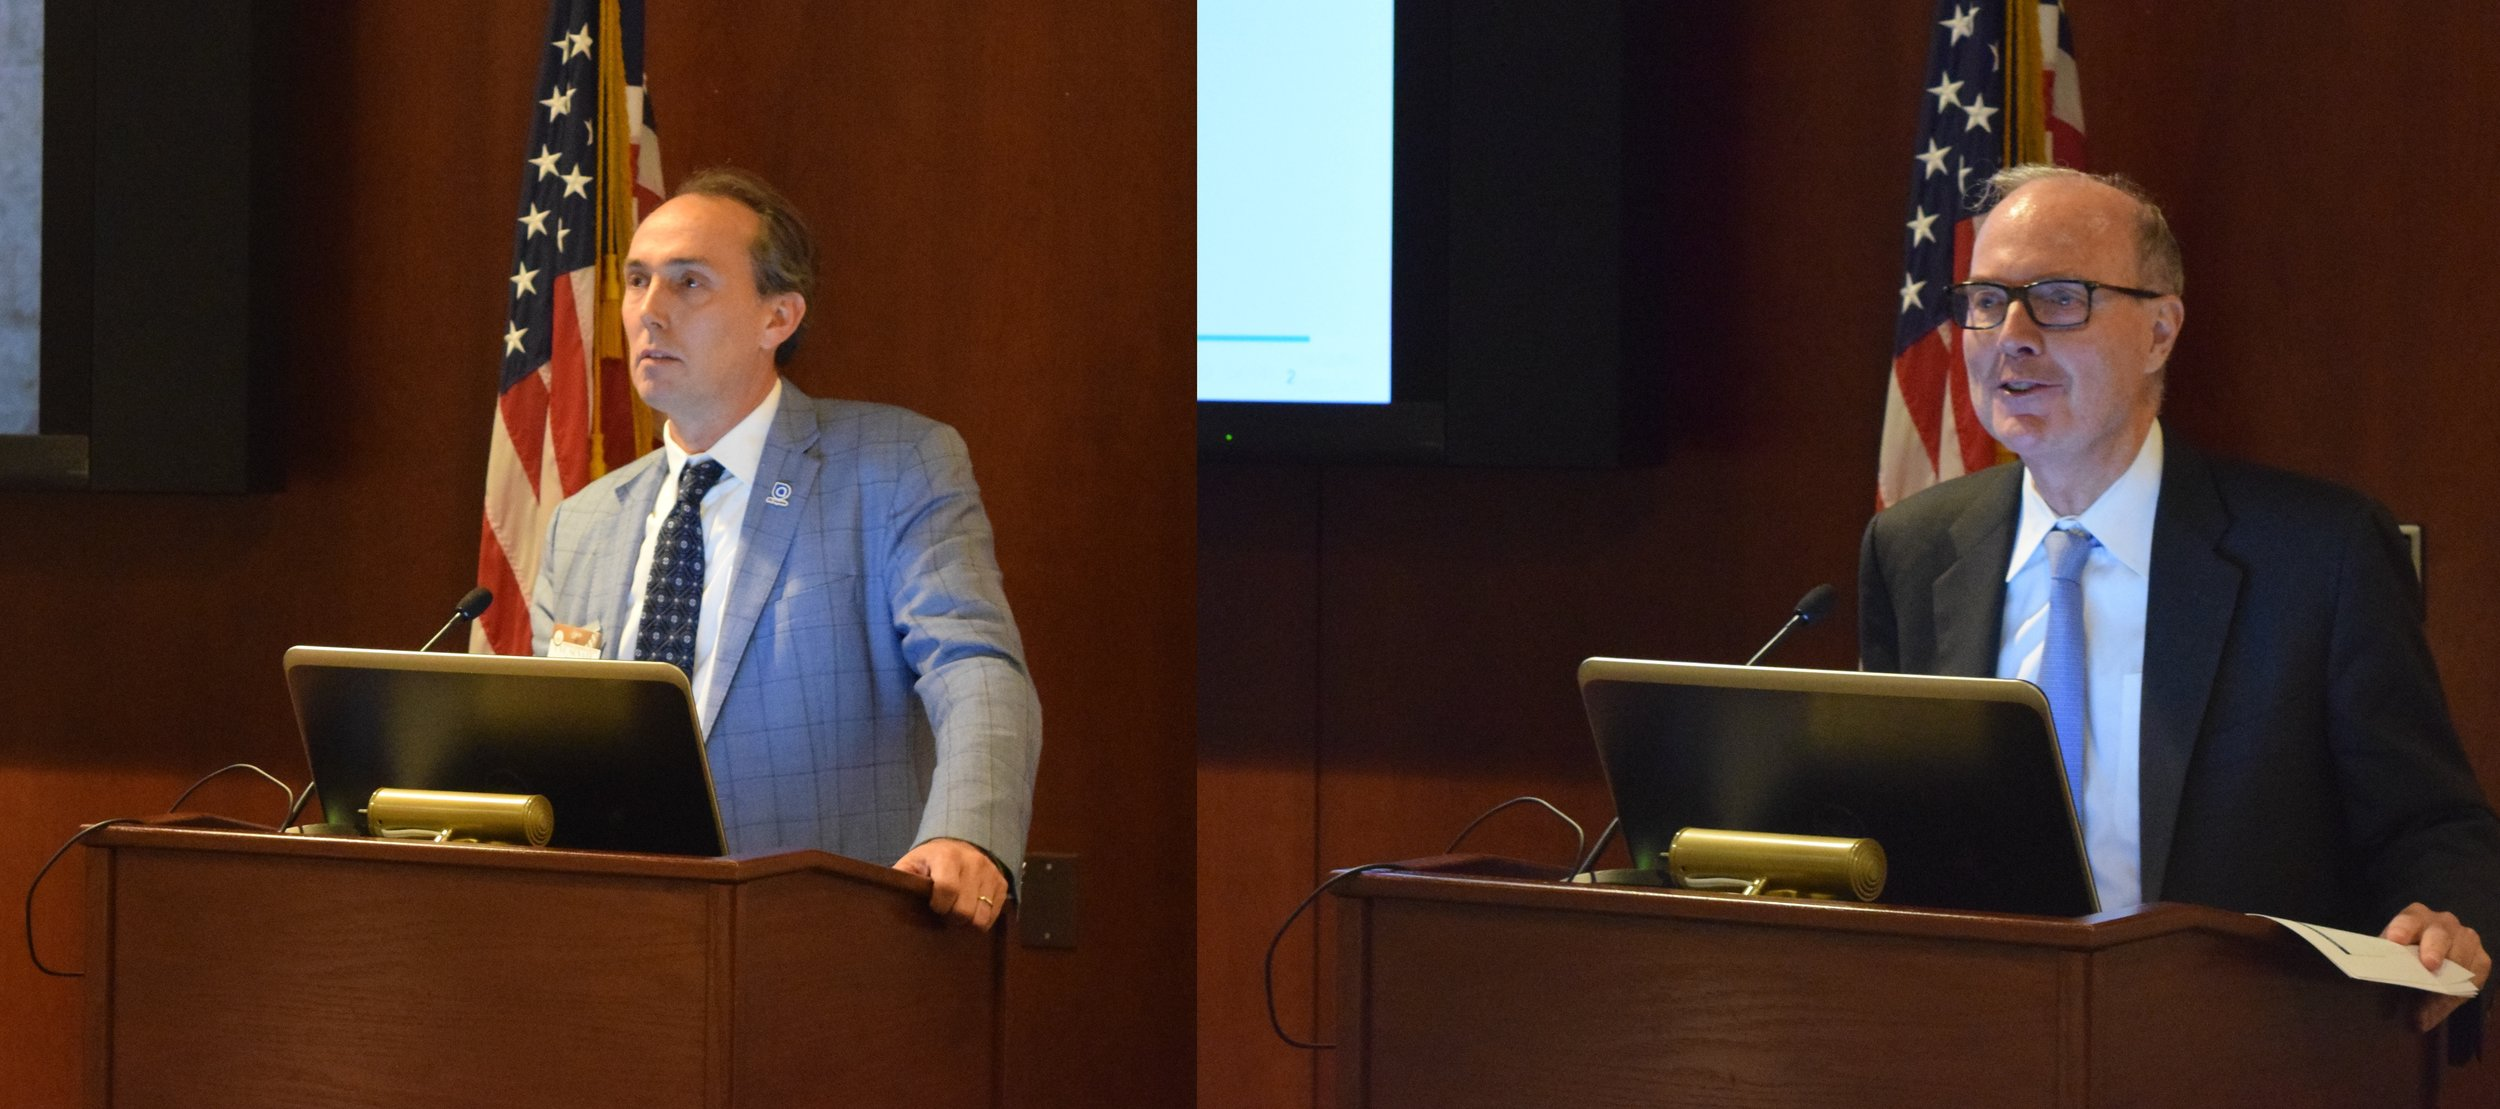 Ole Hoefelmann (left), CEO of Air Liquide Advanced Technologies U.S., and Andy Marsh (right), CEO of Plug Power, gave presentations on hydrogen fueling infrastructure and stationary power fuel cells, respectively. Source: FCHEA